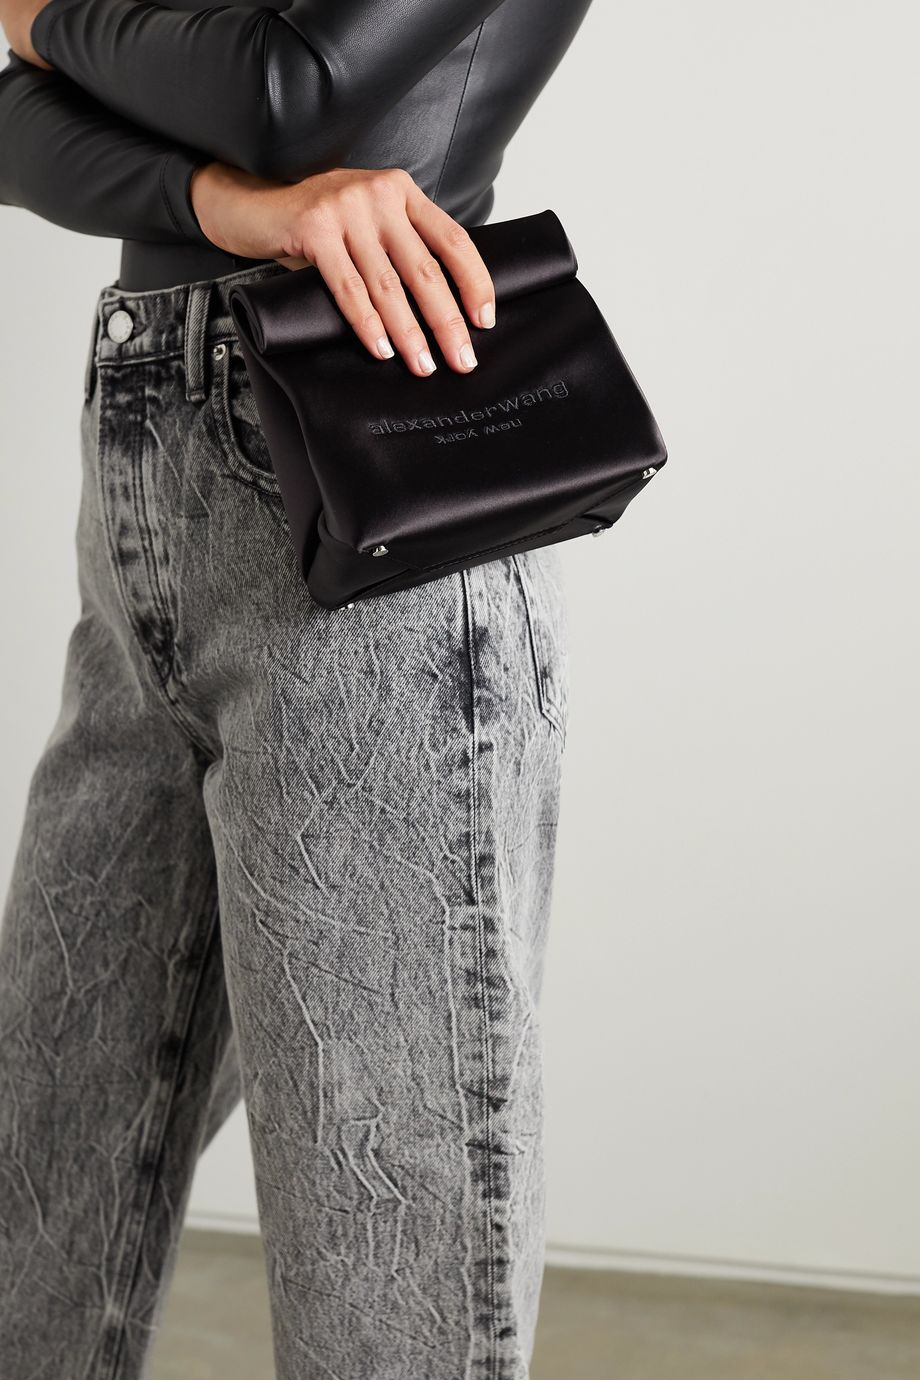 Alexander Wang Lunch Bag embroidered satin clutch